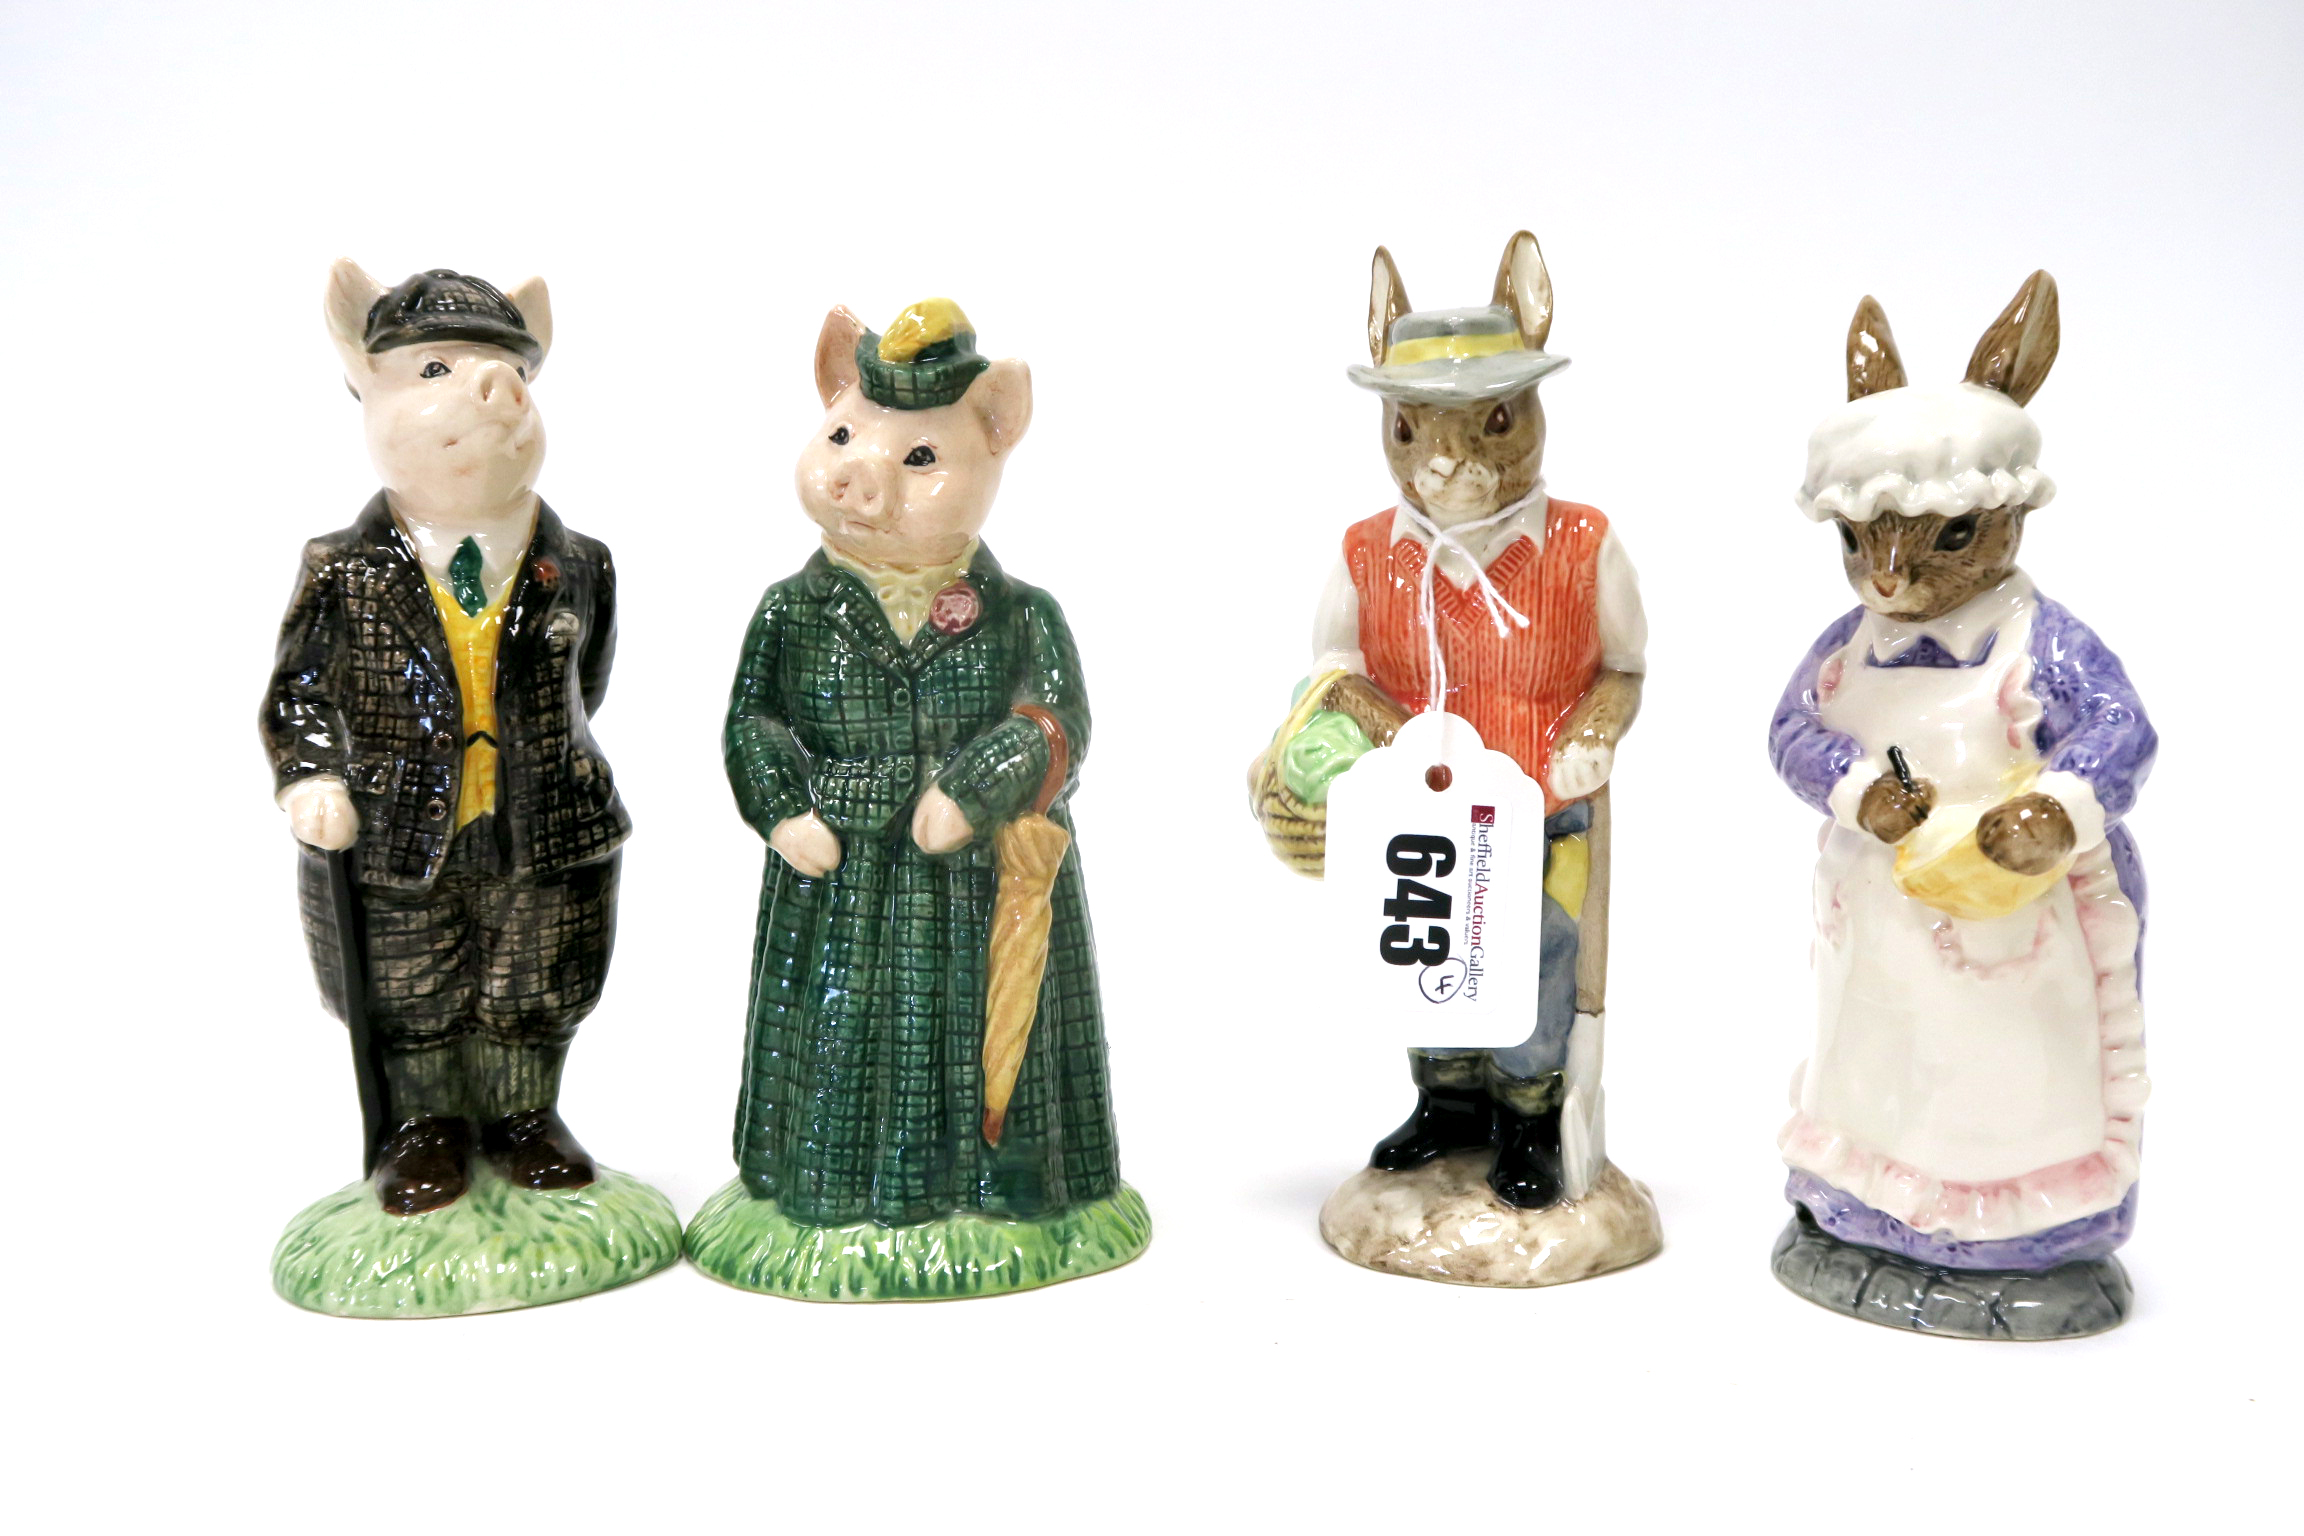 Lot 643 - Four Beswick Pottery English Country Folk Figures, Gardener Rabbit, Rabbit Baking, Gentleman Pig and